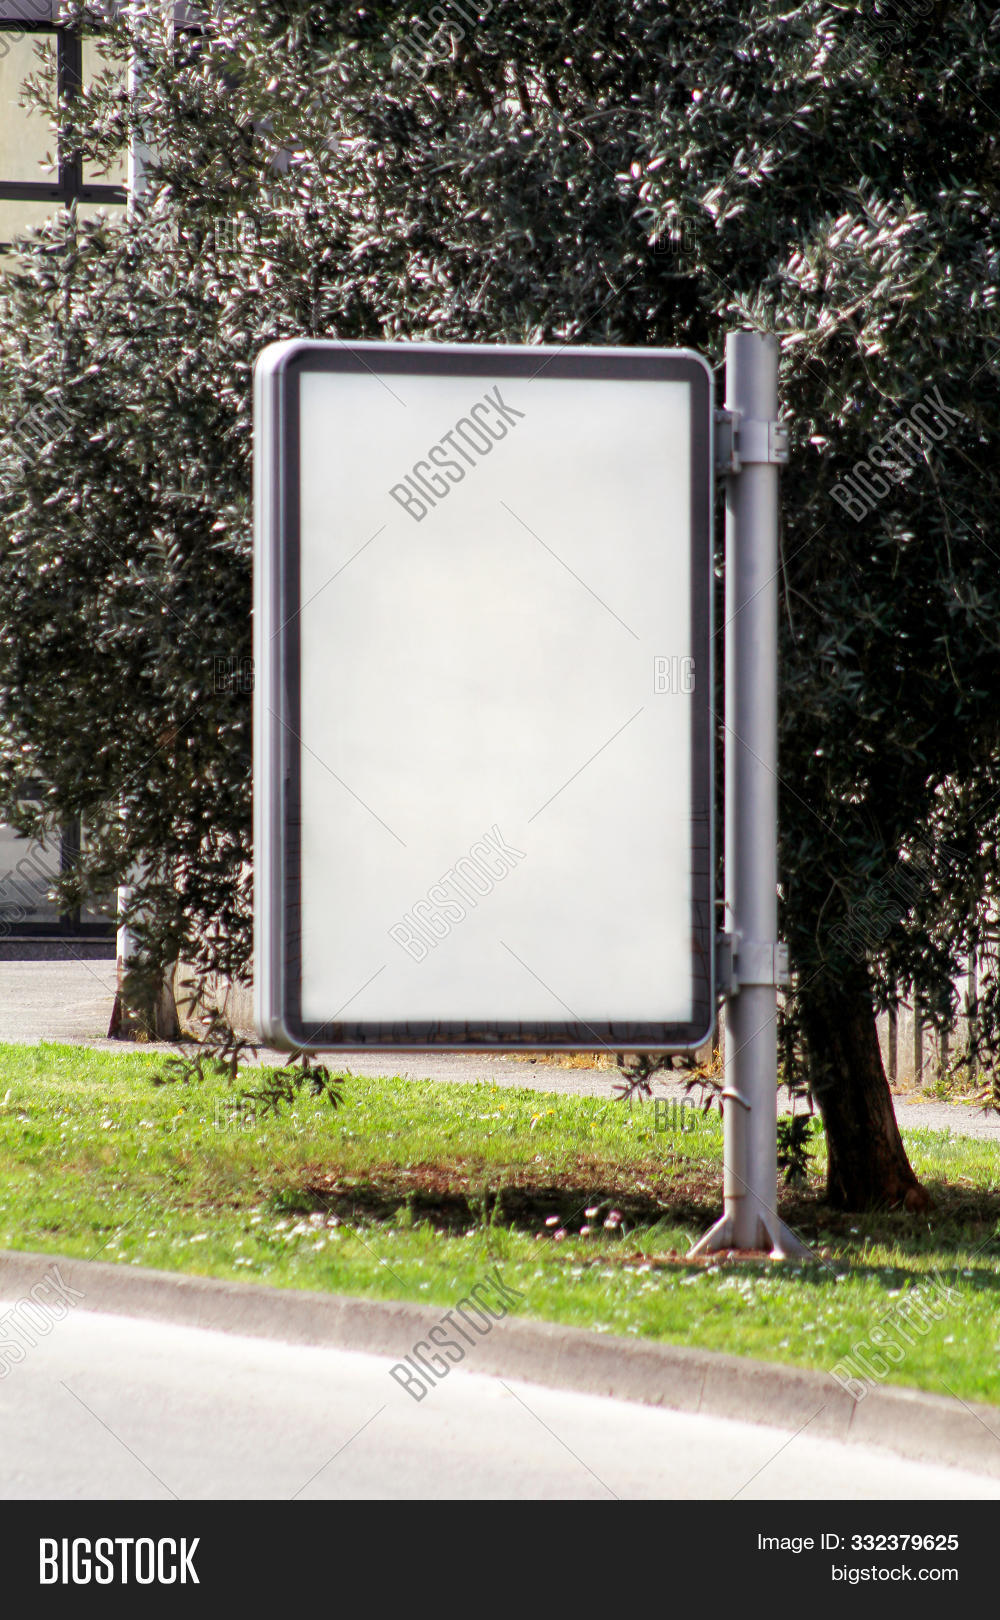 Billboard In The Street City, Green Plants, Selective Focus And Closeup. Blank Advertising Billboard